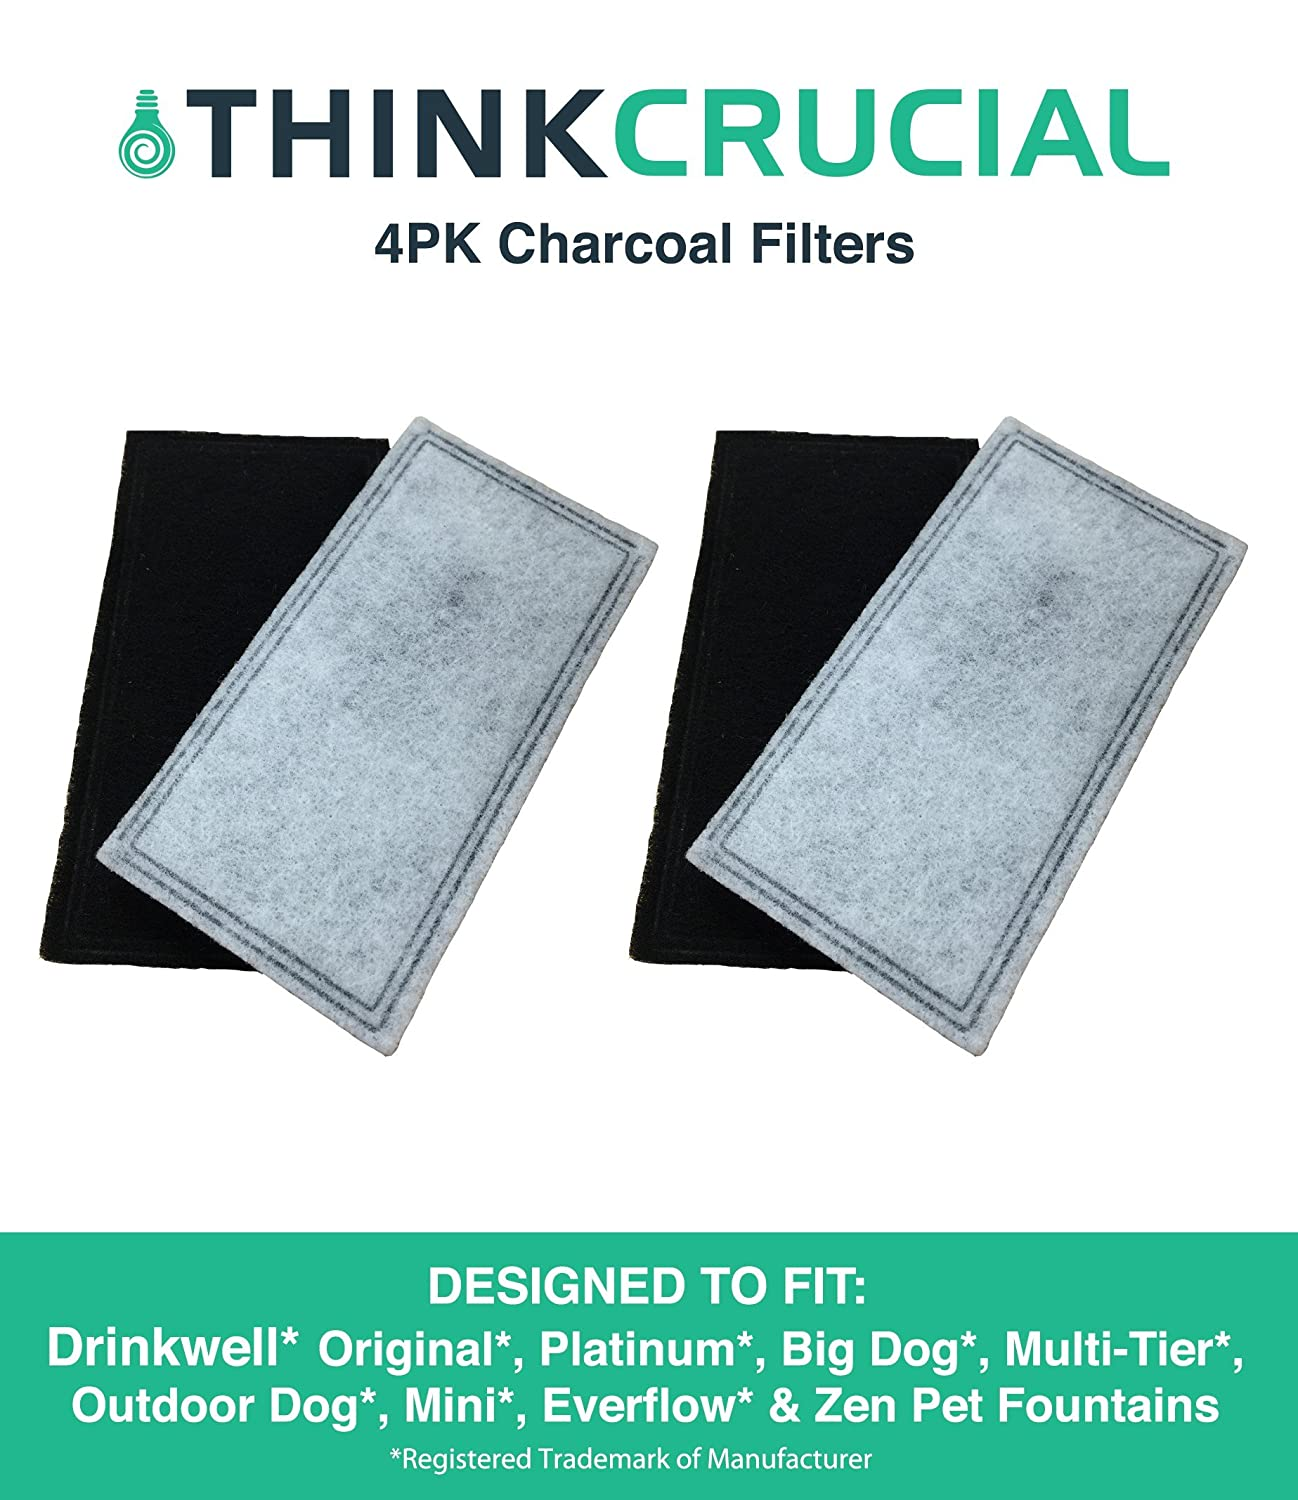 4 Replacements for Drinkwell Two-Chamber Charcoal Filters, Fits Big Dog, Everflow, Mini, Multi-Tier, Original, Outdoor Dog, Platinum, & Zen Fountains, by Think Crucial